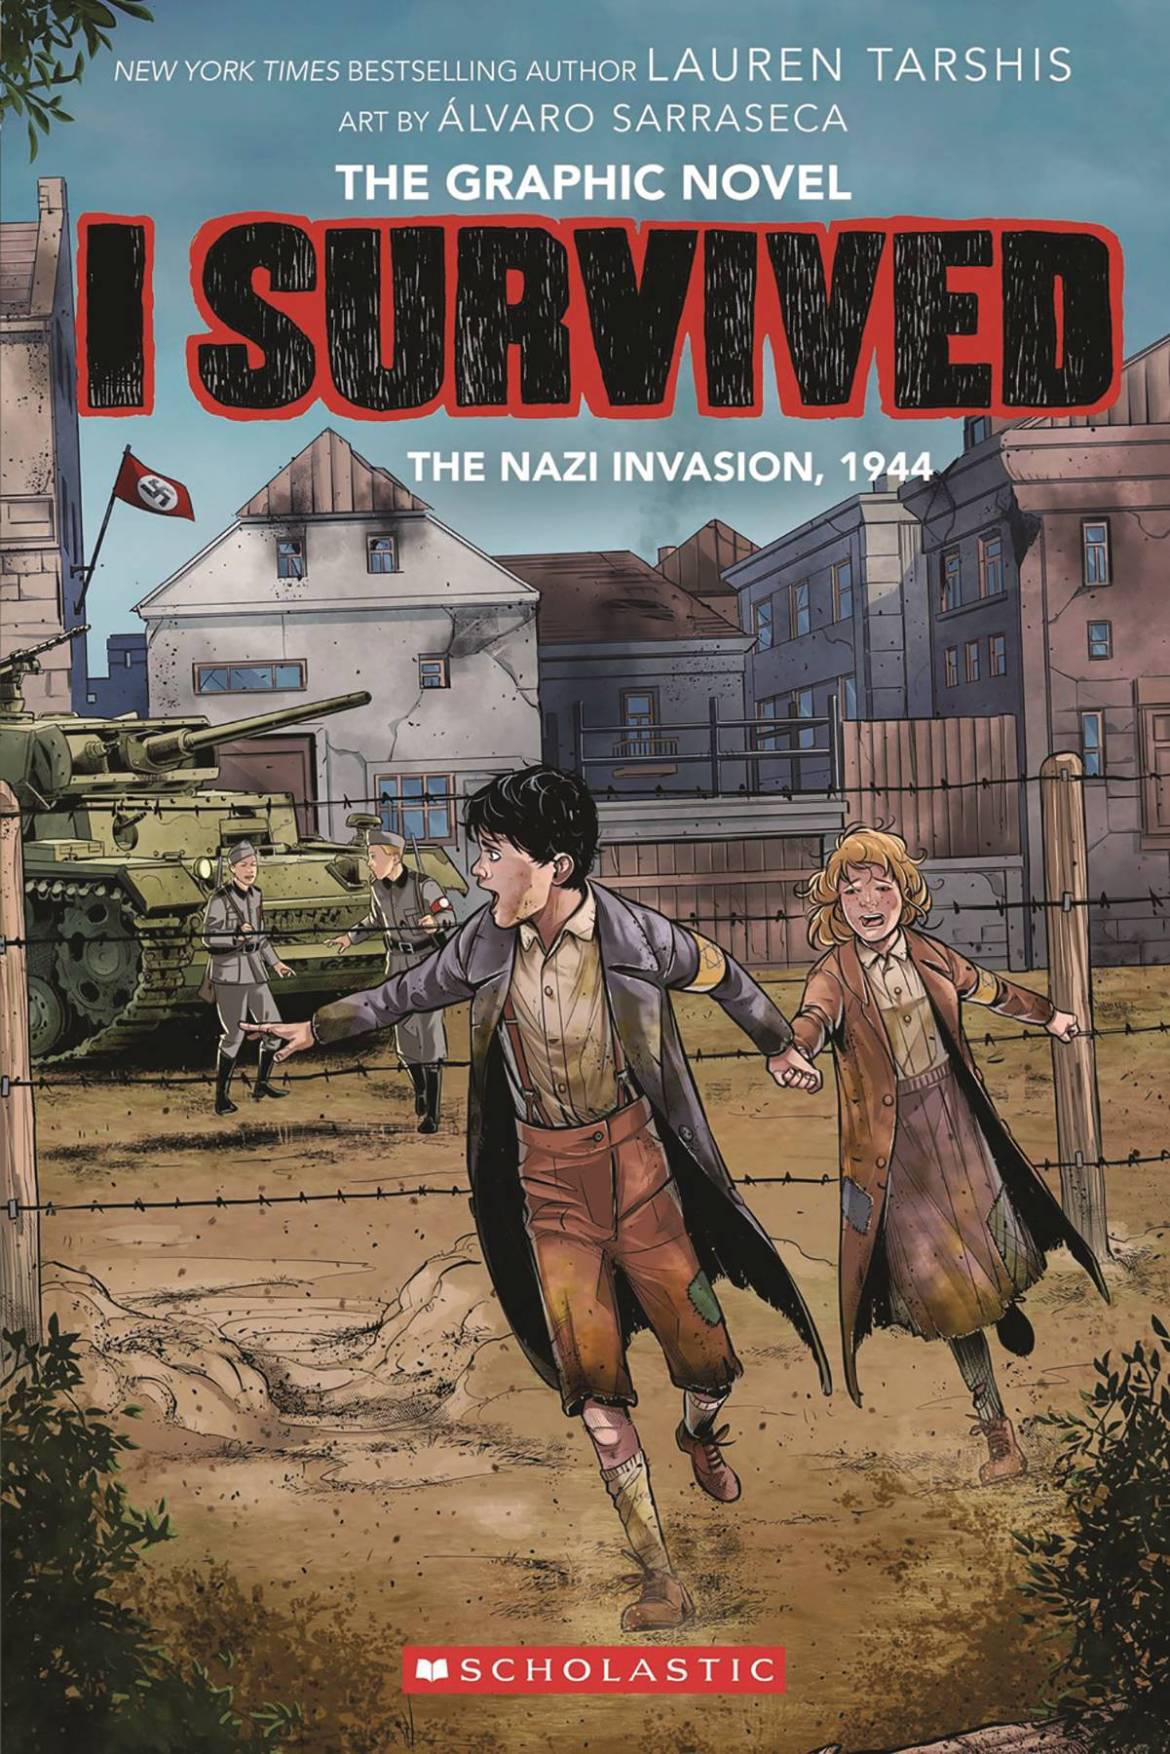 STL174196 ComicList: New Comic Book Releases List for 01/20/2021 (1 Week Out)